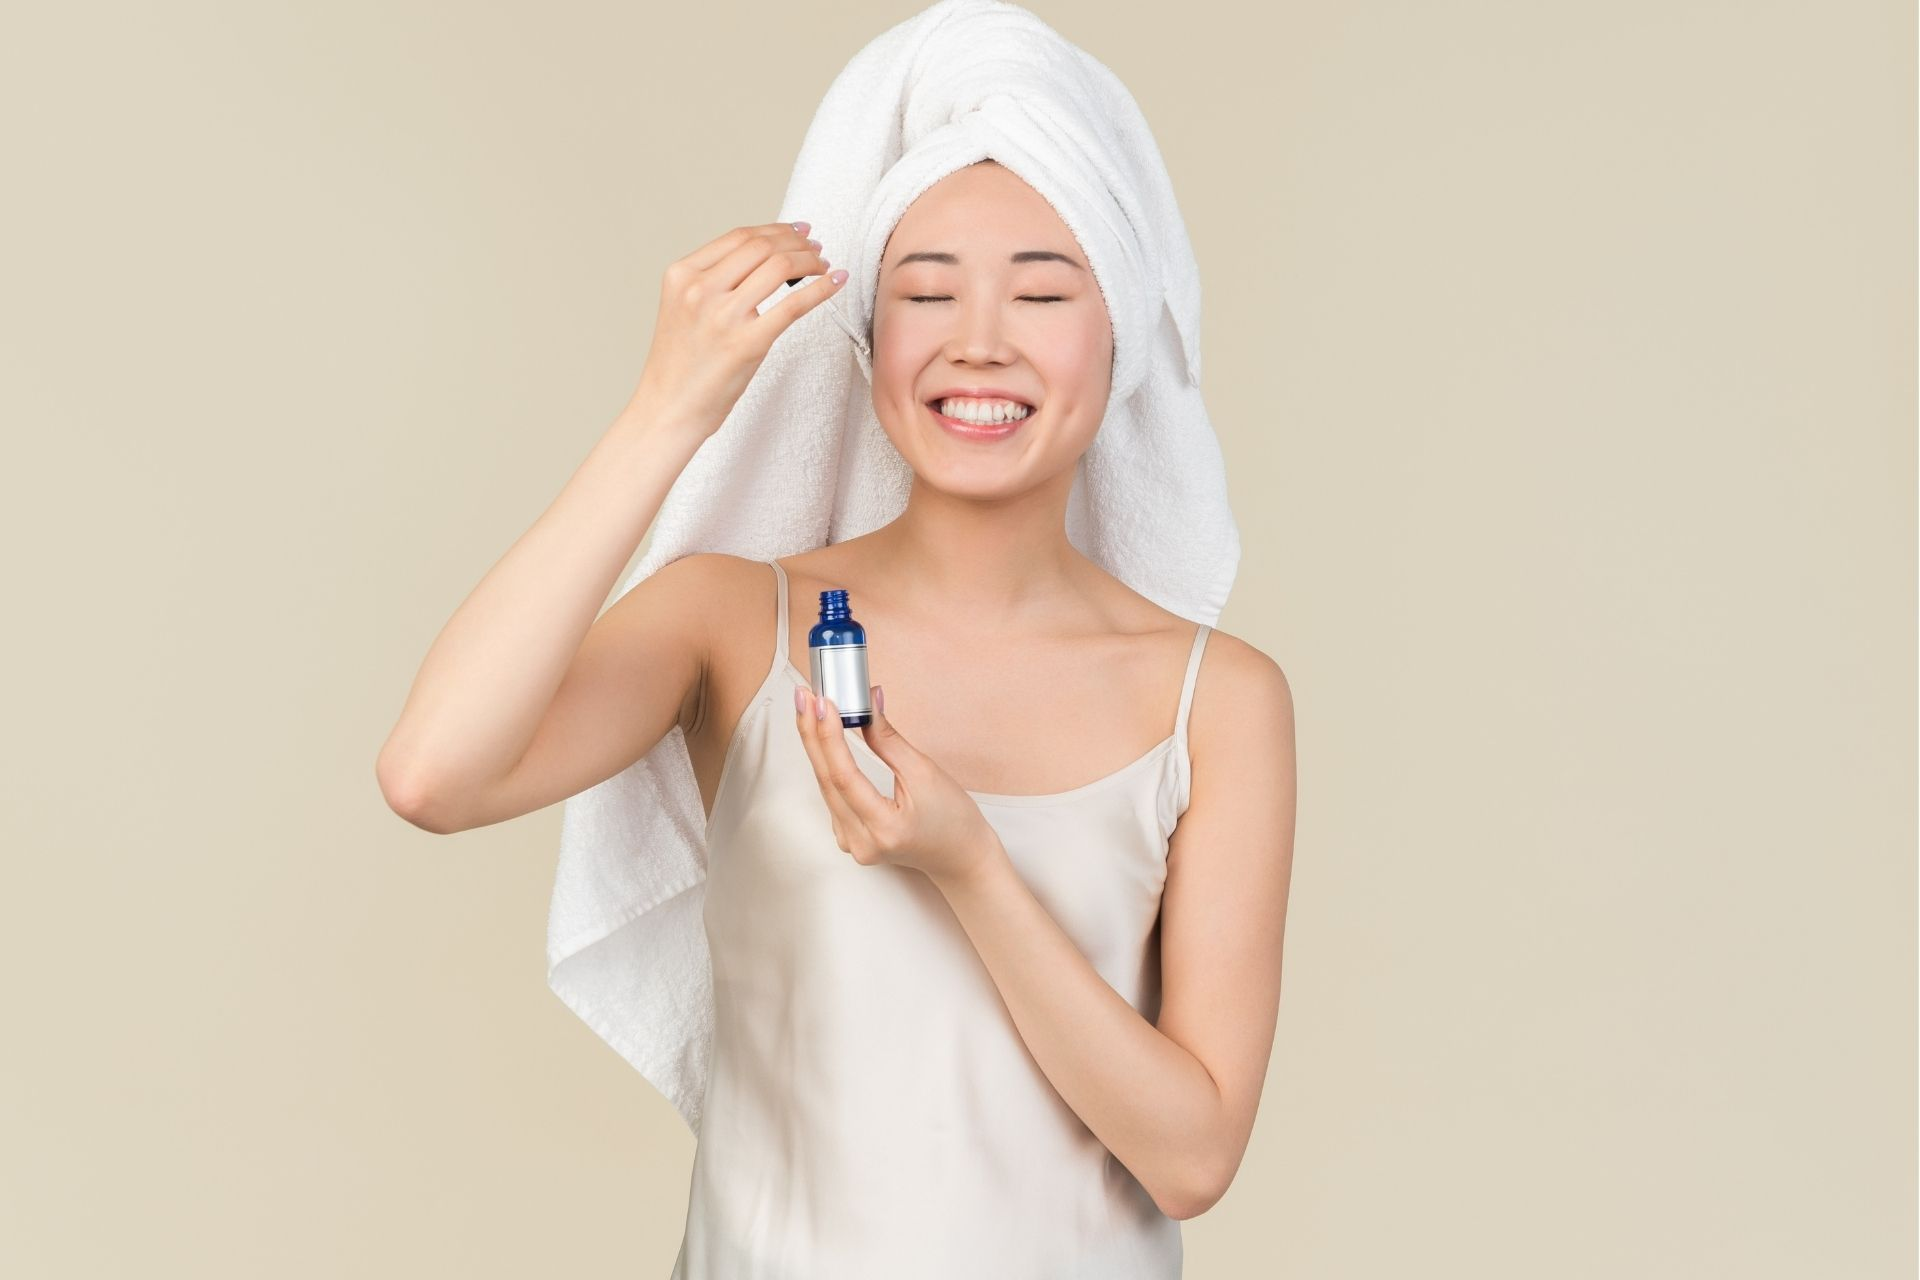 A person applying a medical grade skincare product onto her face